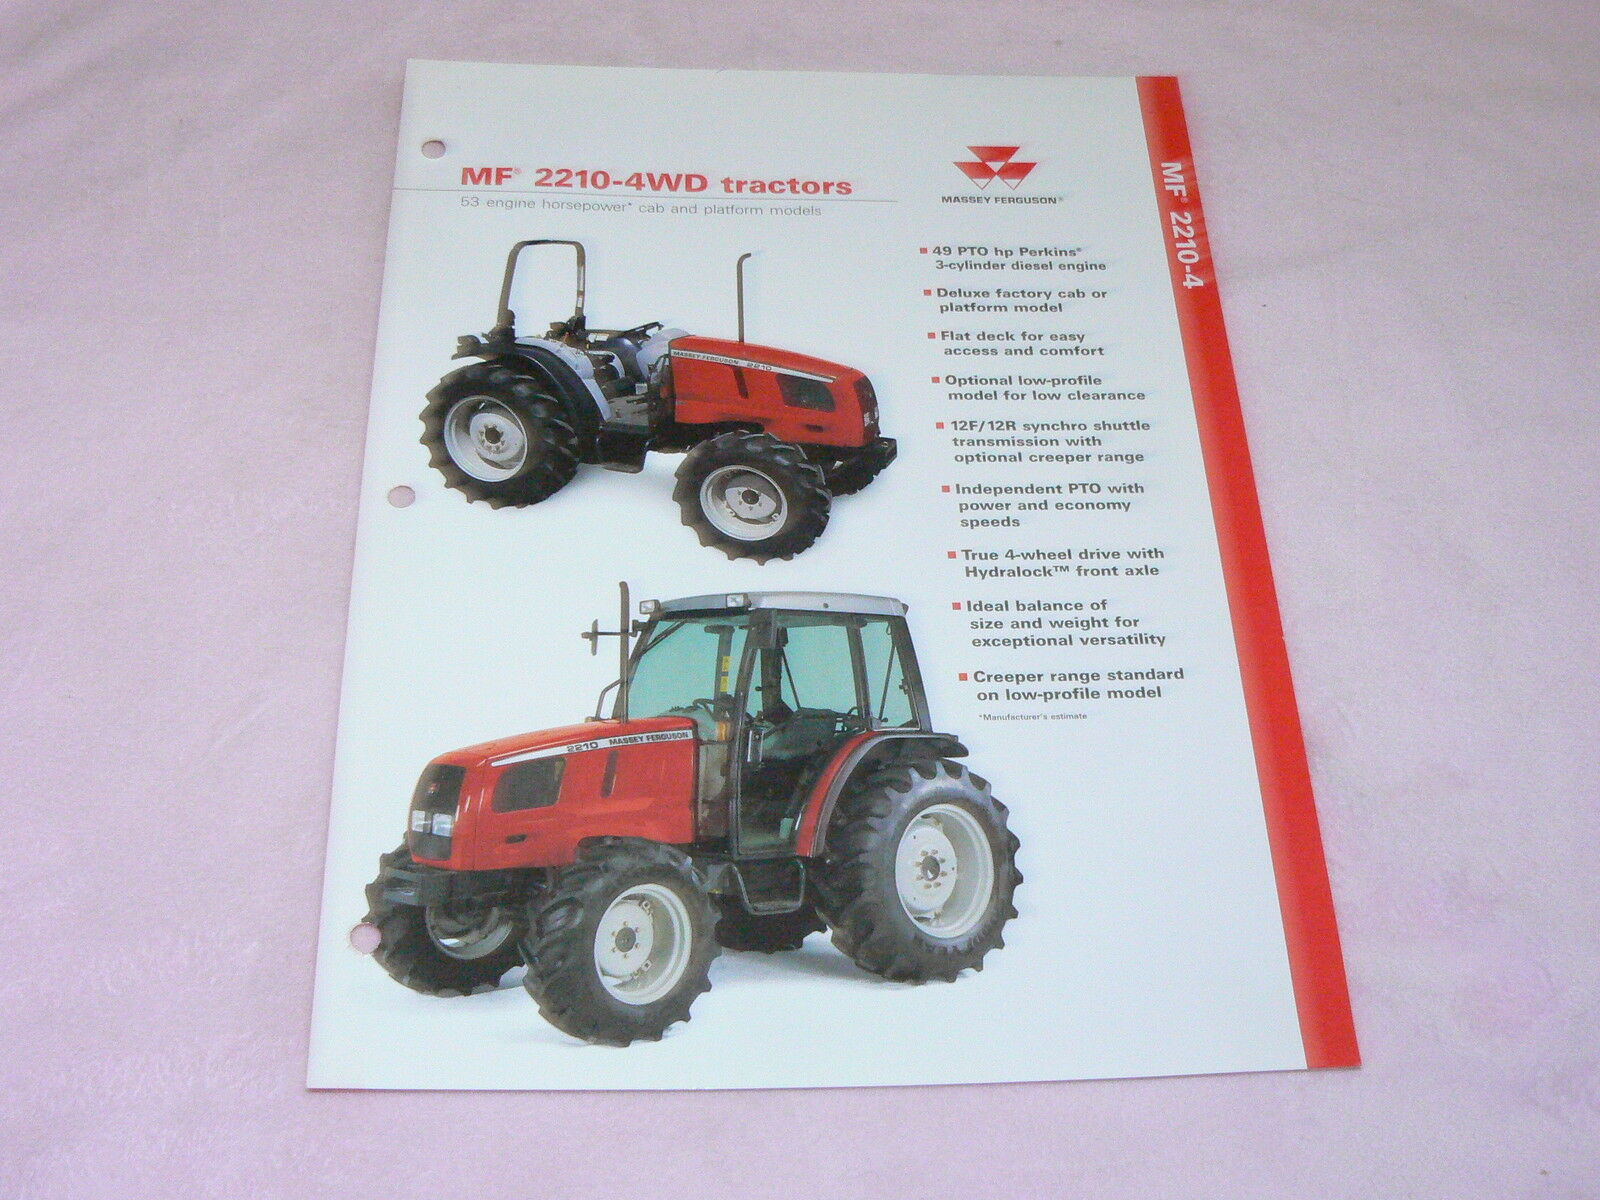 Massey Ferguson 2210 4WD Tractor Dealer's Brochure 1 of 1Only 1 available  ...